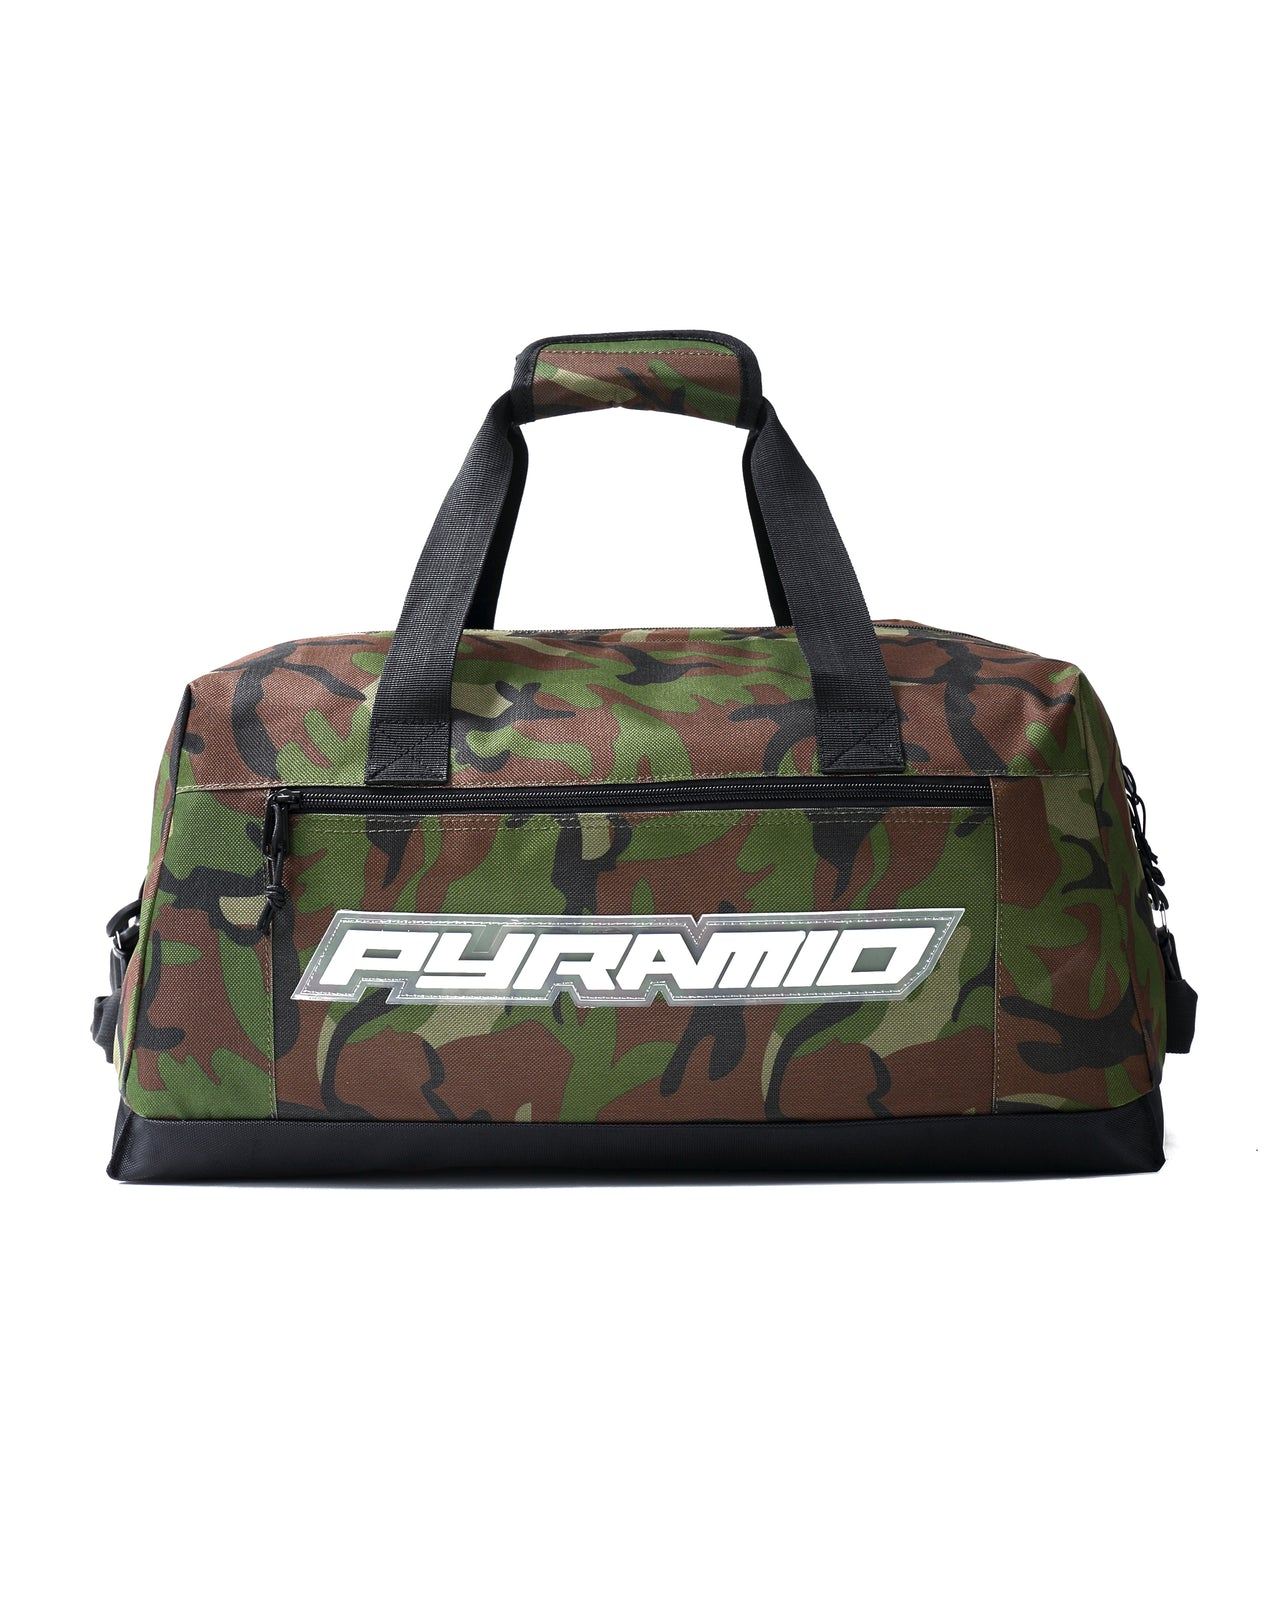 WEEKEND DUFFEL - Color: CAMO